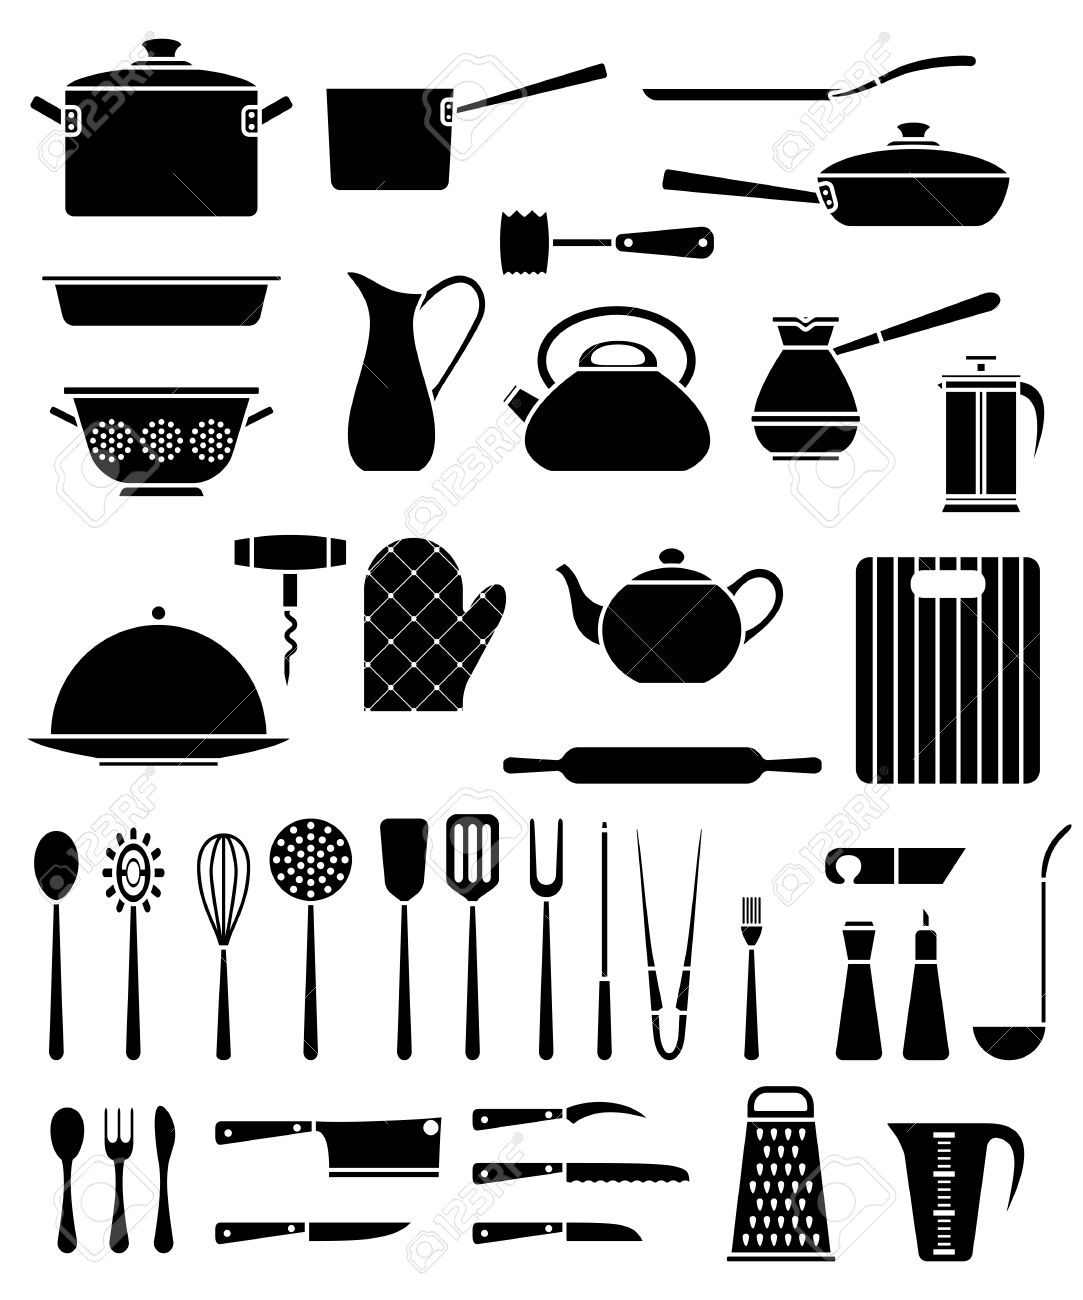 Kitchen tools drawing - Set Of Kitchen Utensil And Collection Of Cookware Icons Cooking Tools And Kitchenware Equipment Stock